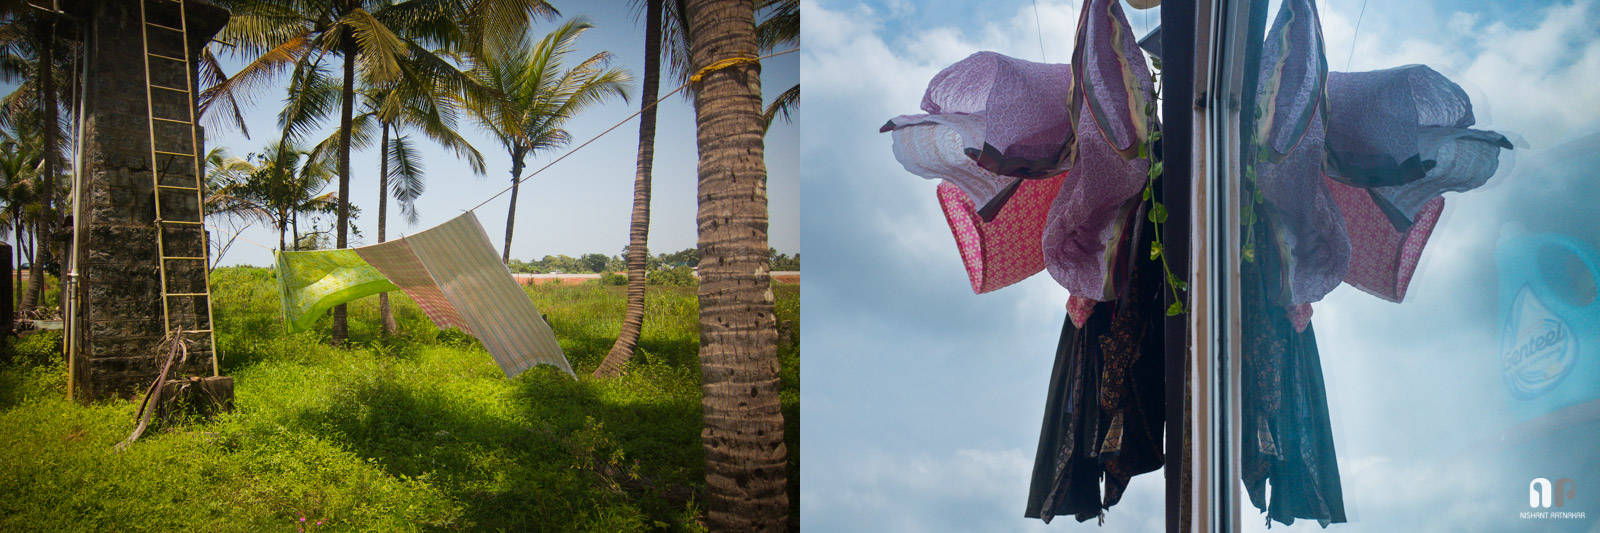 """Where the grass is green, And the skies are blue. - A Diptych from my ongoing project, """"Homeland"""""""